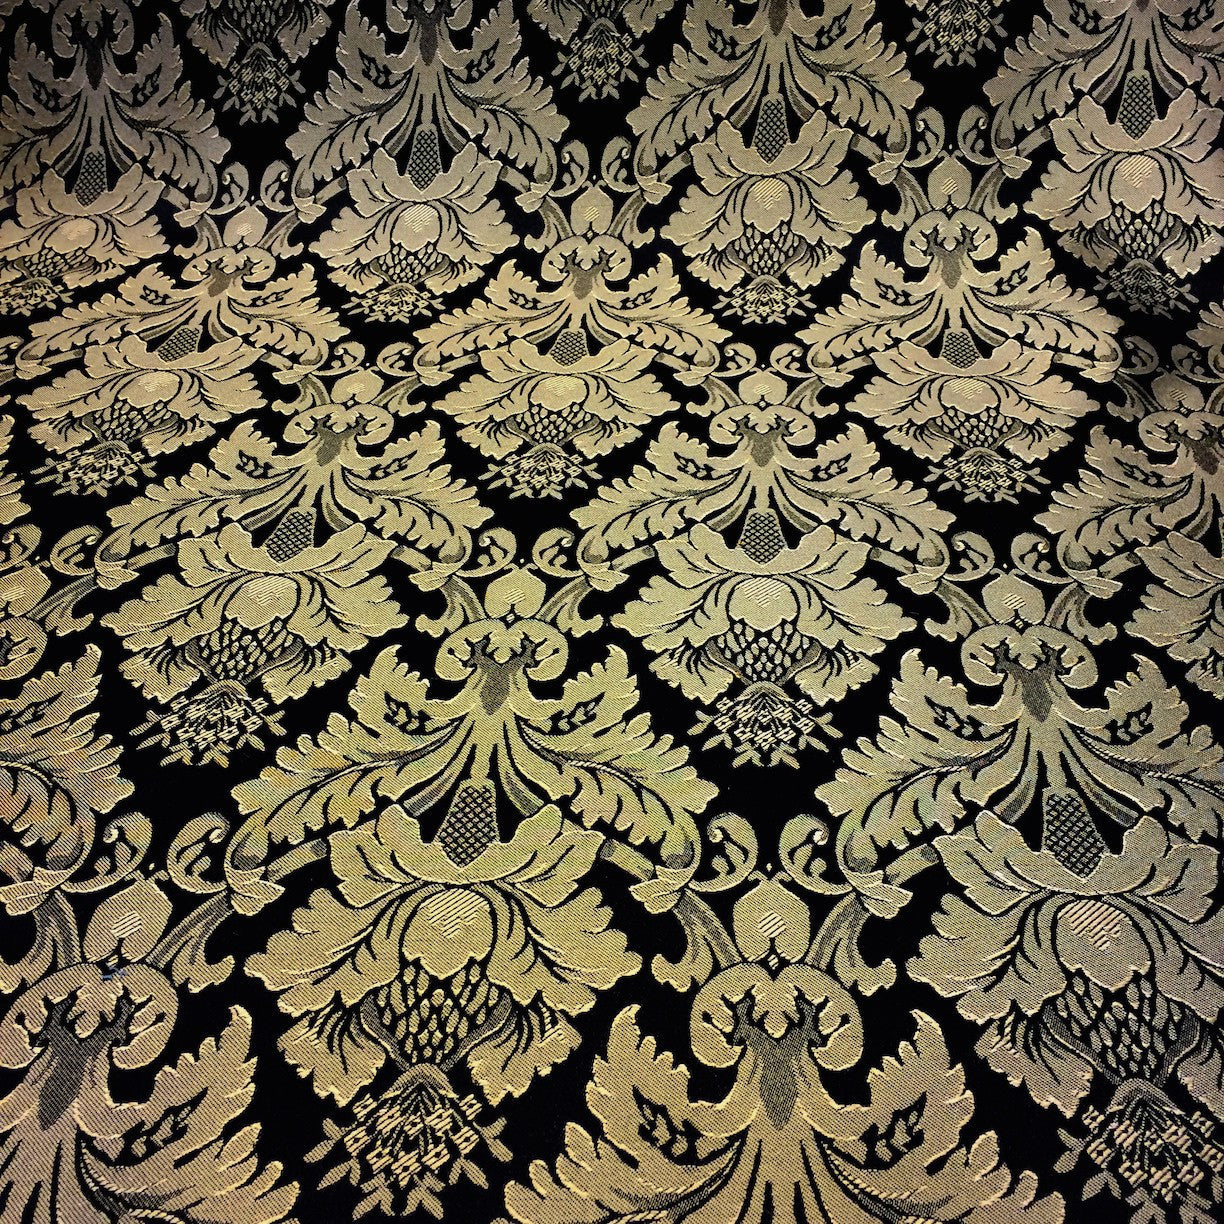 Jacquard Damask Fabric 118 Wide Wholesale Discounts All Colors Fabric Wholesale Direct